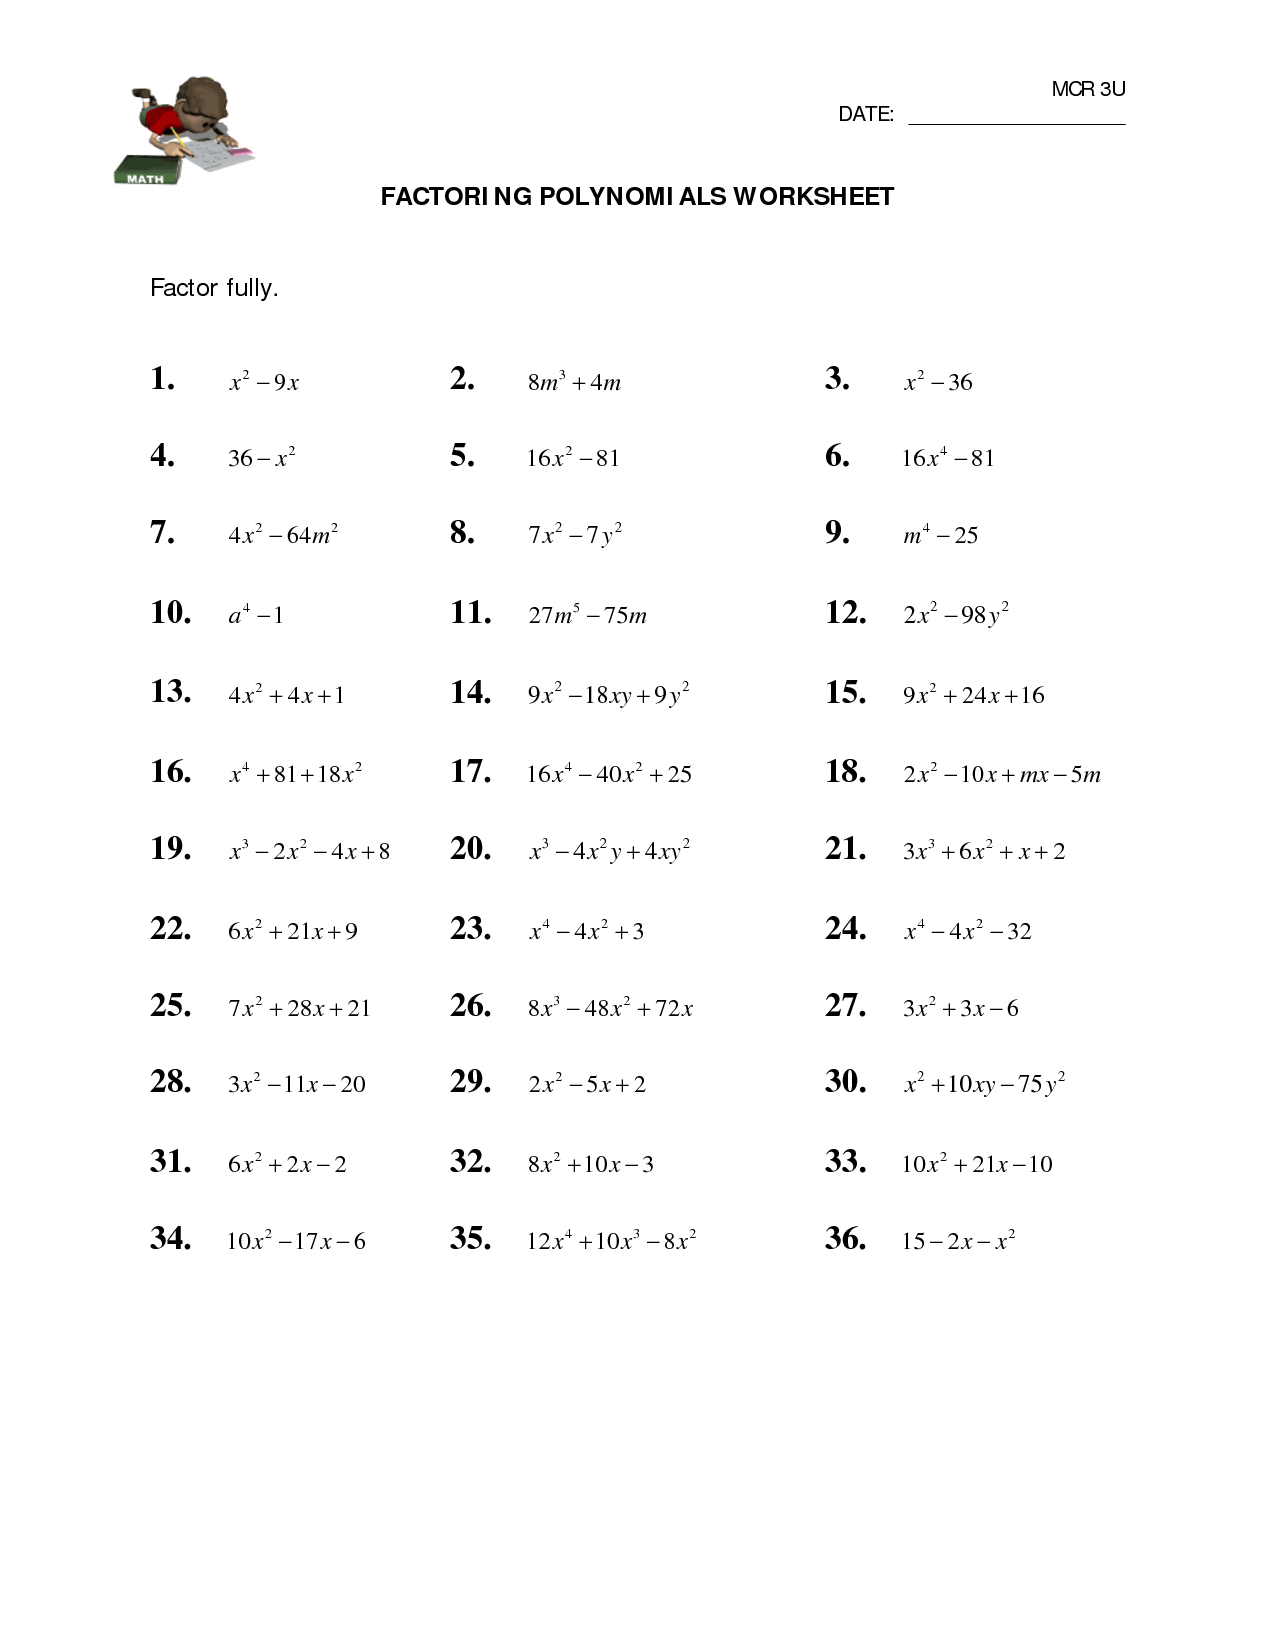 Find The Value Of A That Makes Ax2 - 20X + 25 A Perfect